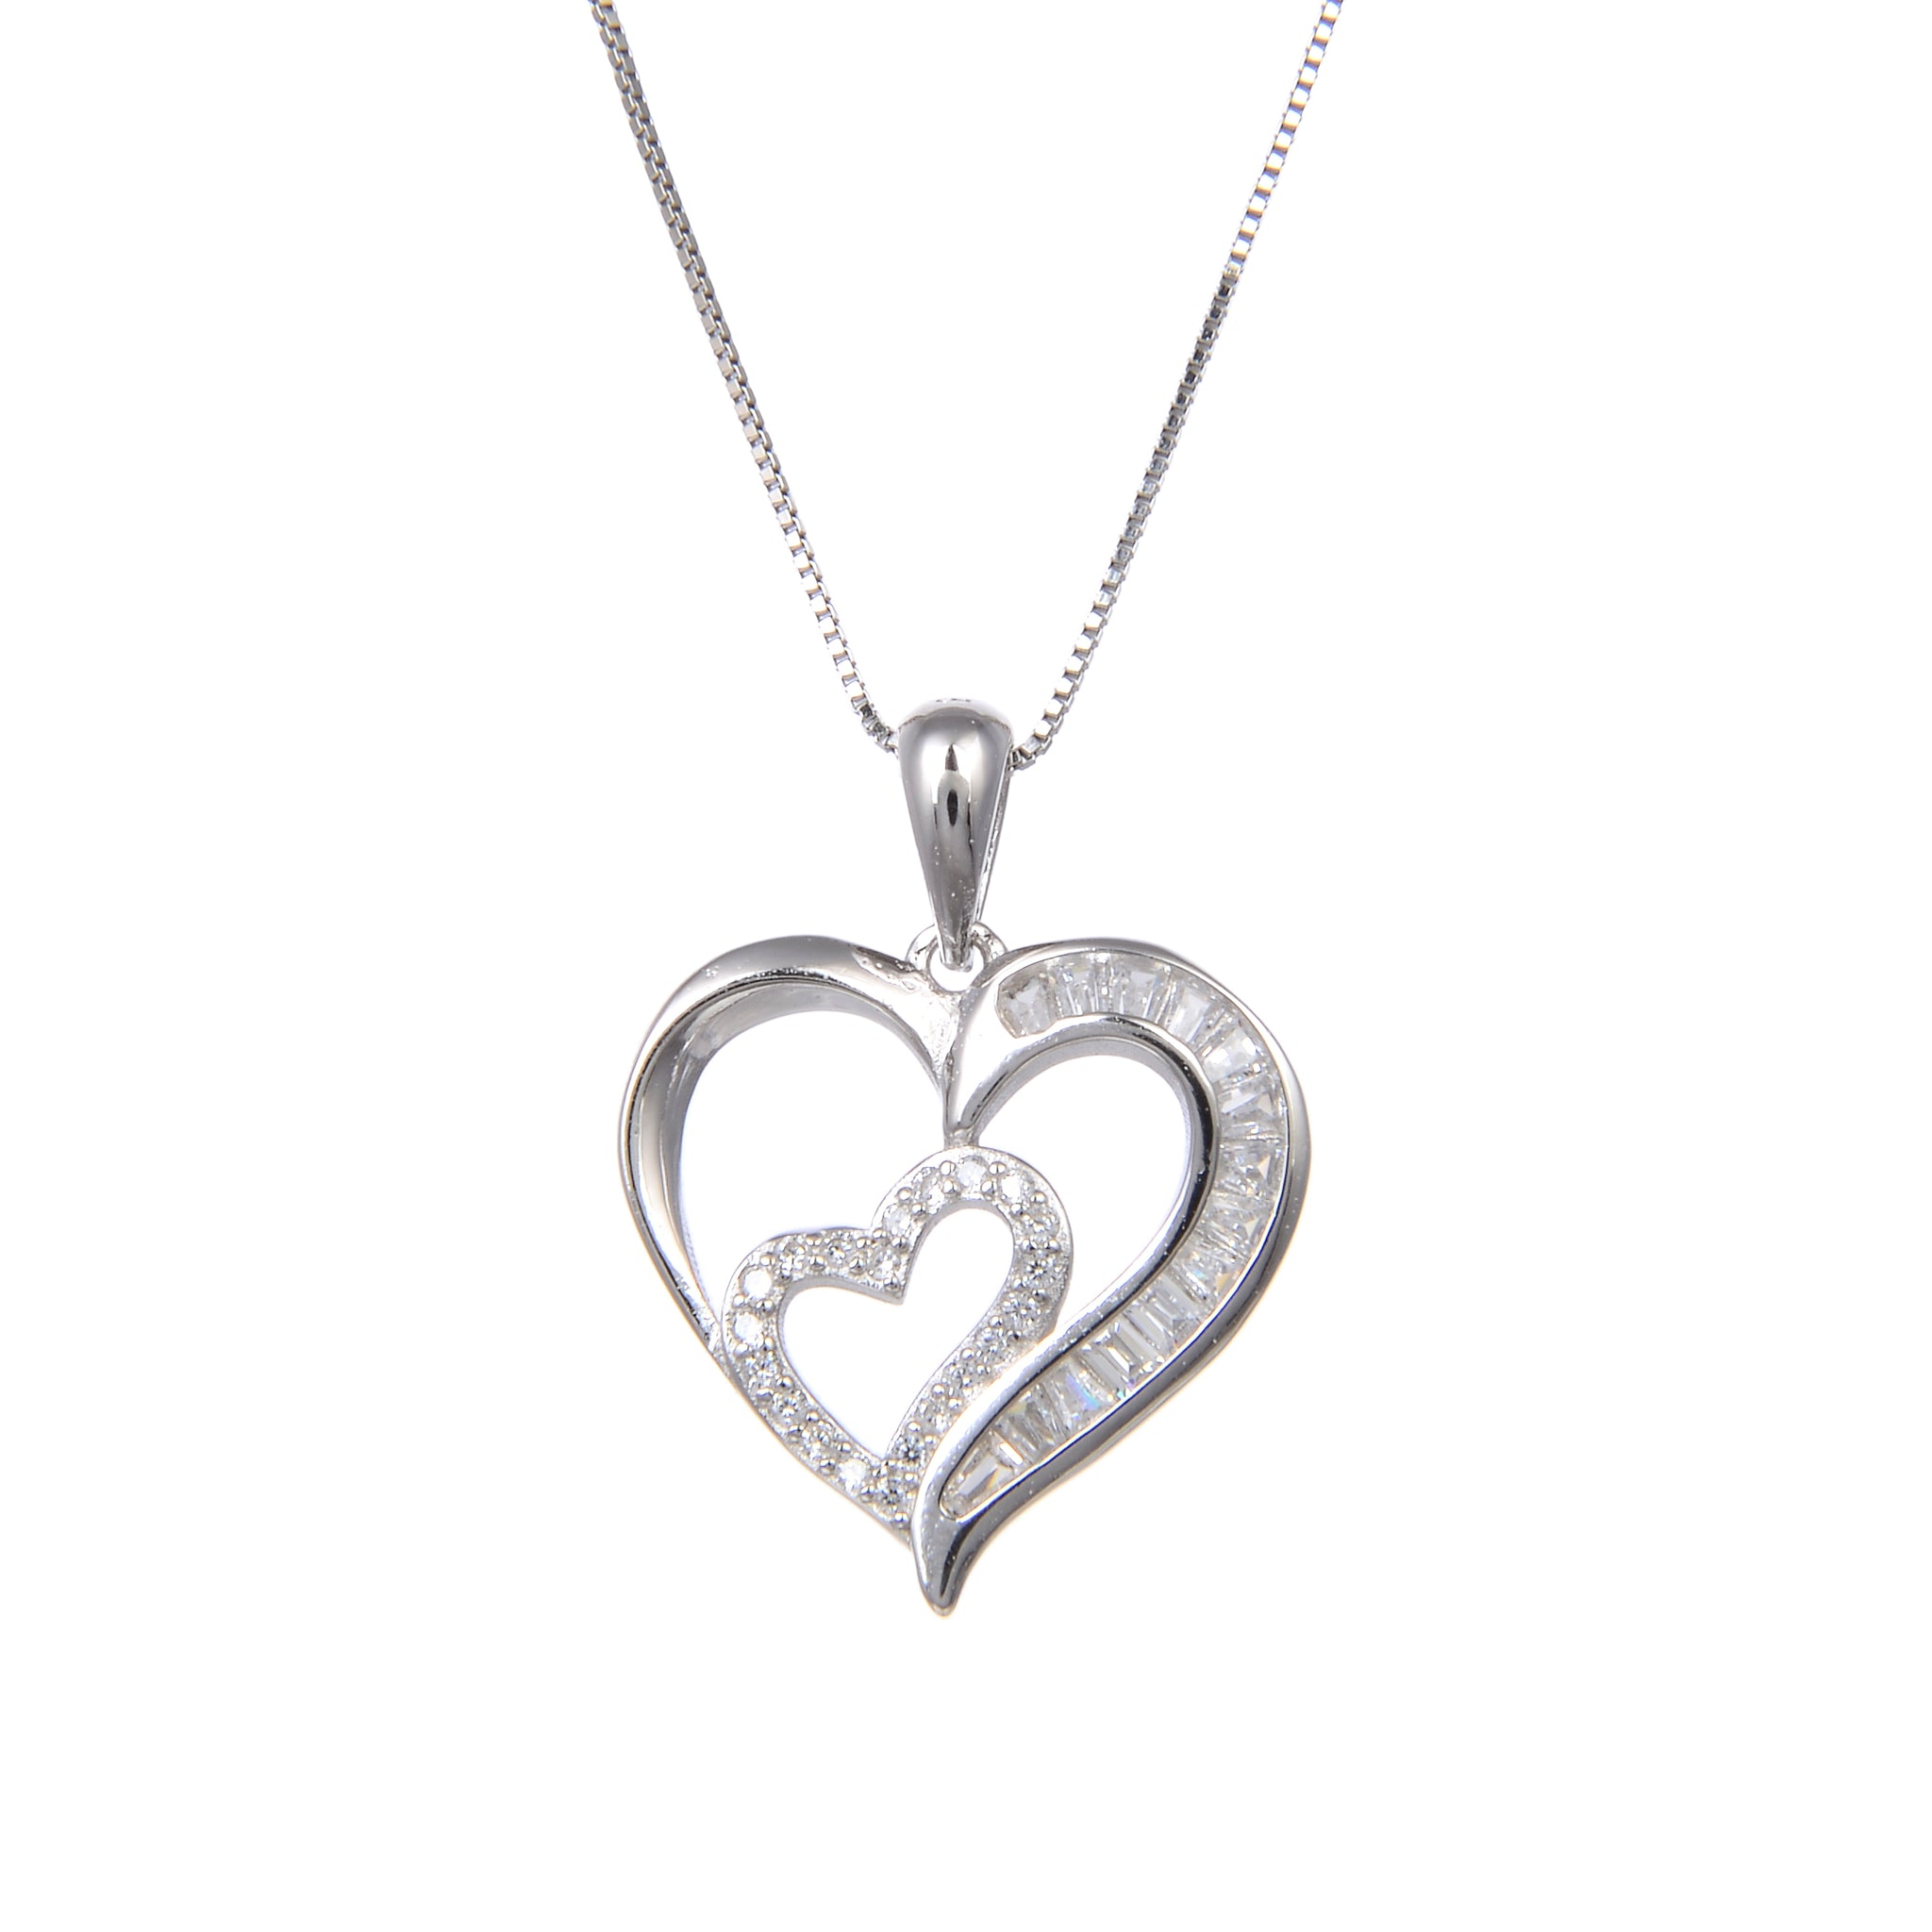 92.5 Sterling Silver Necklace with Heart in Heart Shaped CZ Cubic Zirconia Pendant